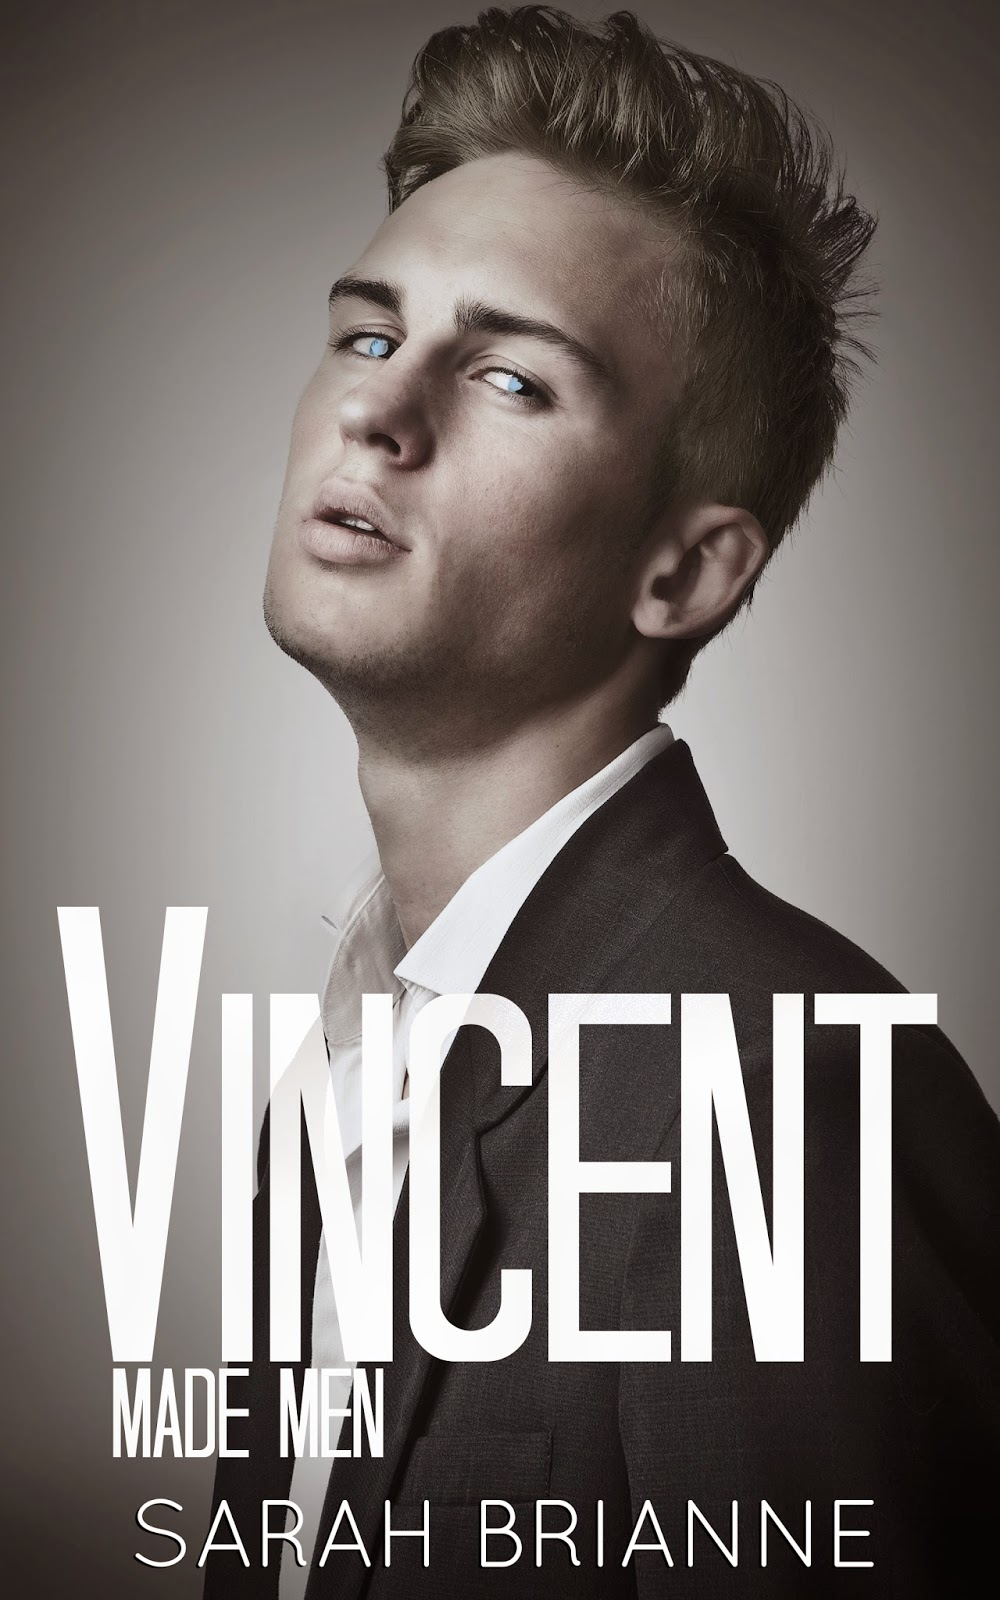 http://www.amazon.de/Vincent-Made-Men-Book-English-ebook/dp/B00URQFXC2/ref=sr_1_1?ie=UTF8&qid=1427299756&sr=8-1&keywords=sarah+brianne+vincent